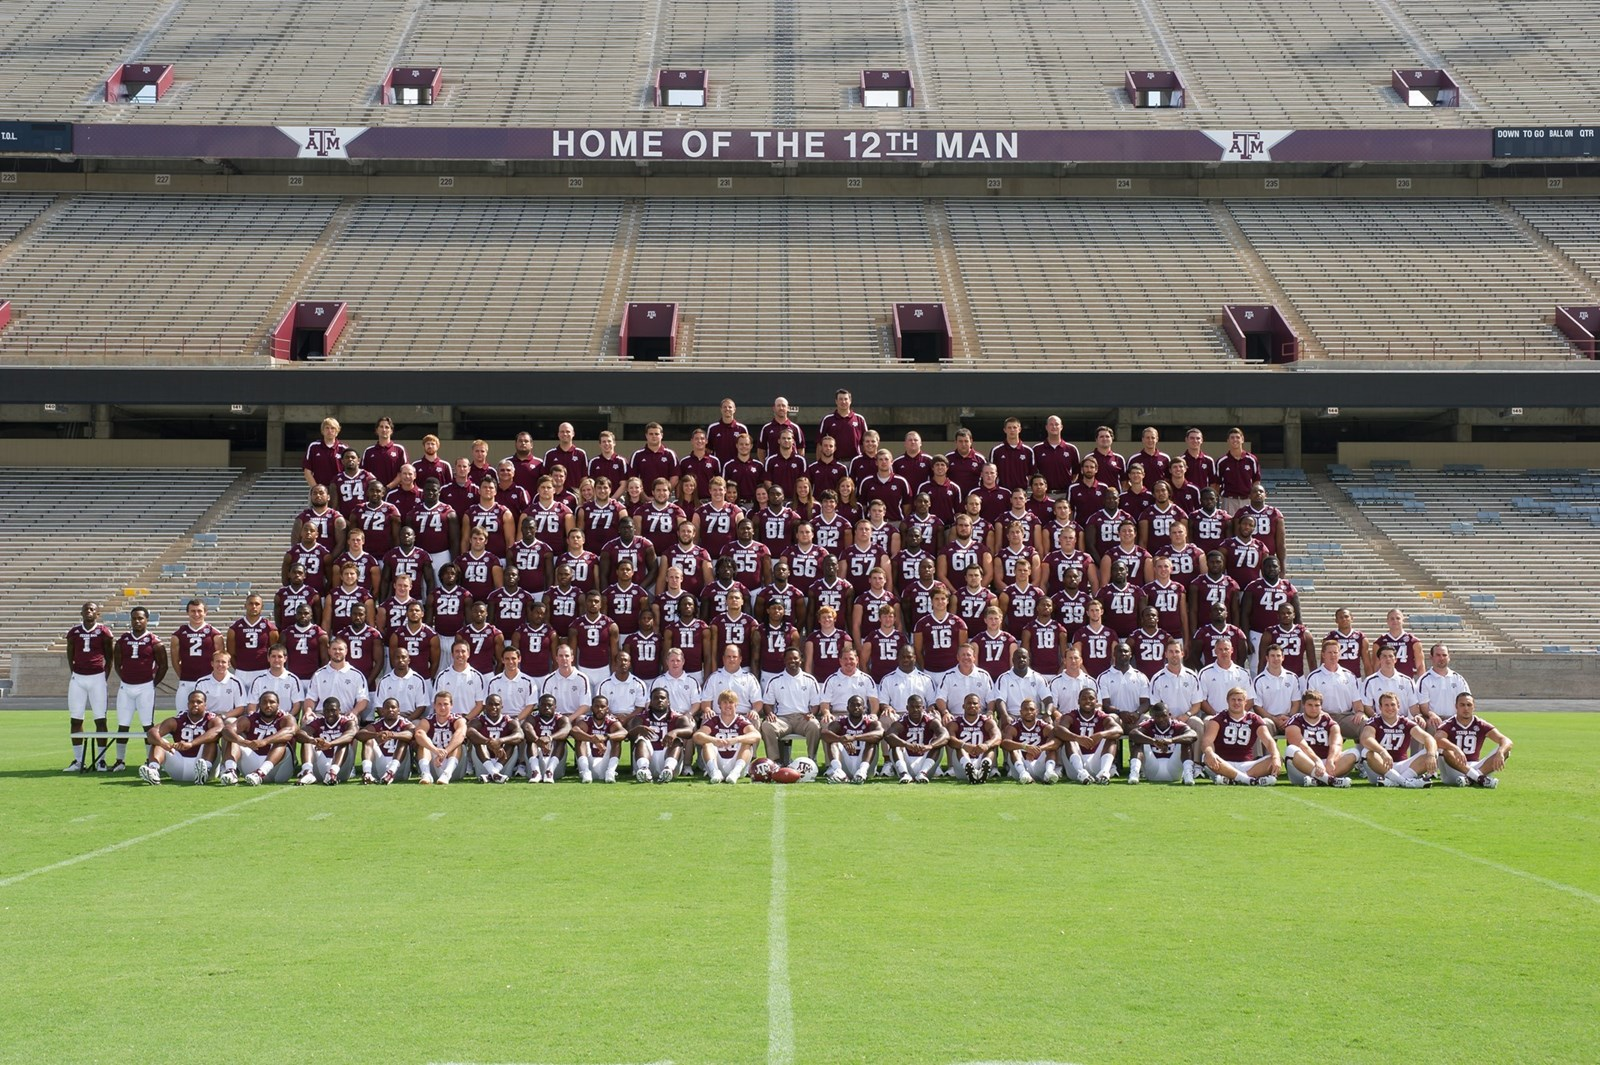 2012 0 Roster Texas A M University Athletics Home Of The 12th Man